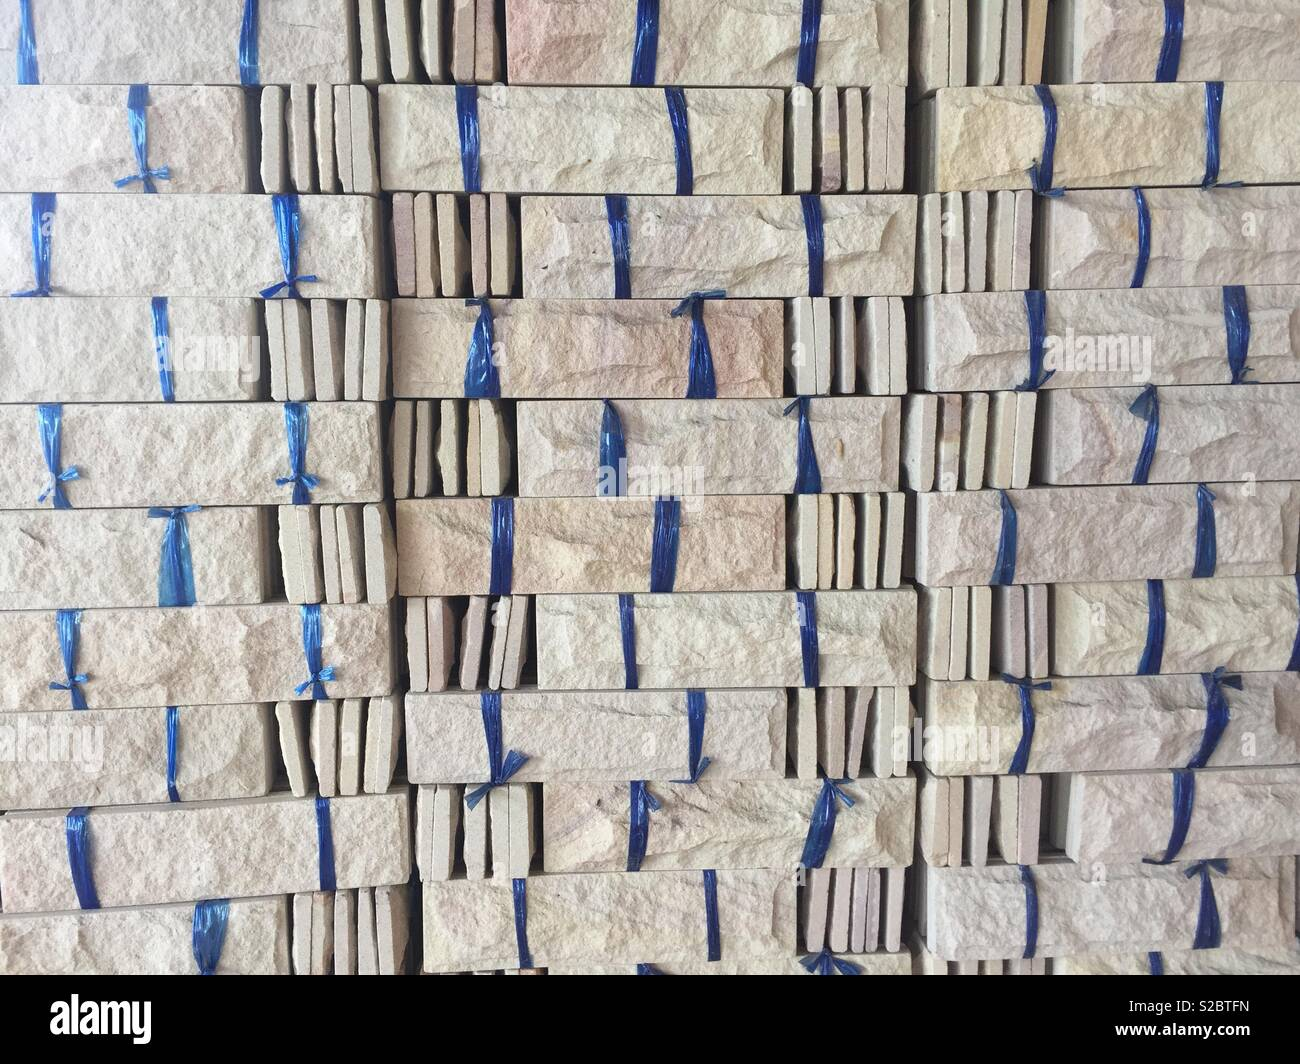 Stone material for decoration - Stock Image